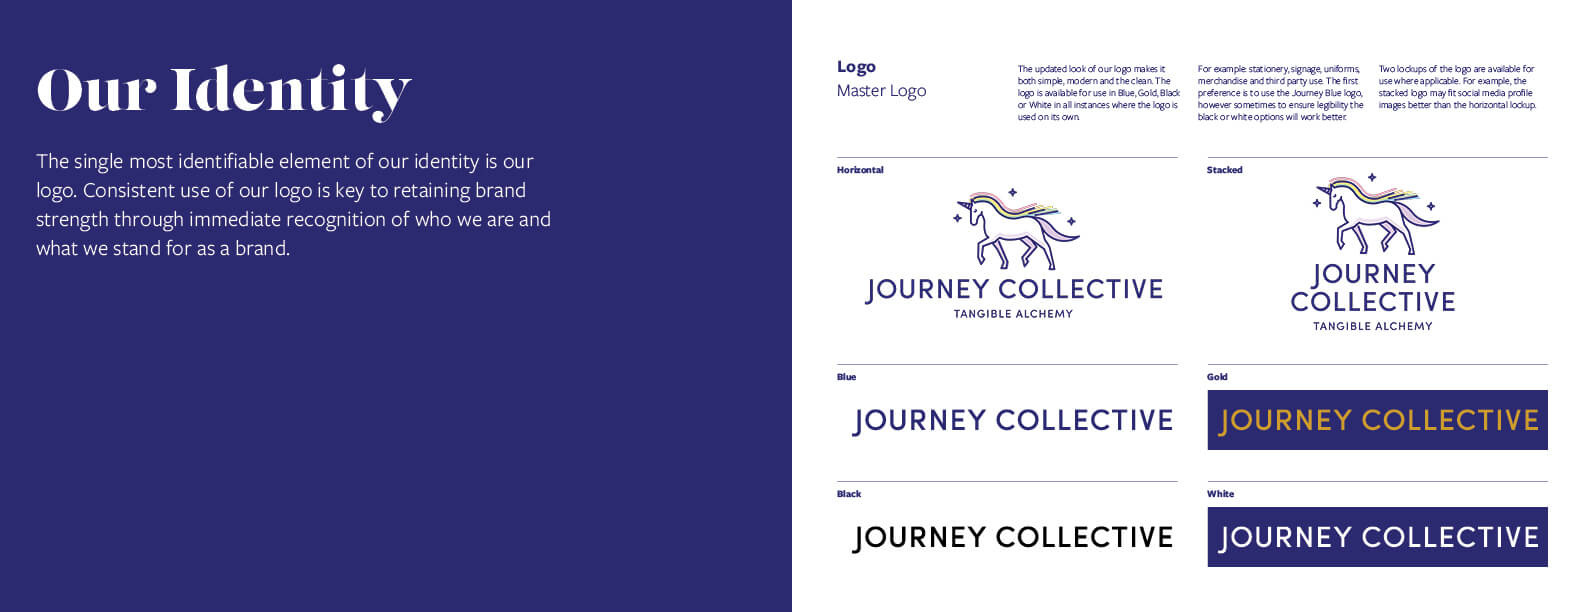 Journey-Collective-Brand-Guidelines6.jpg